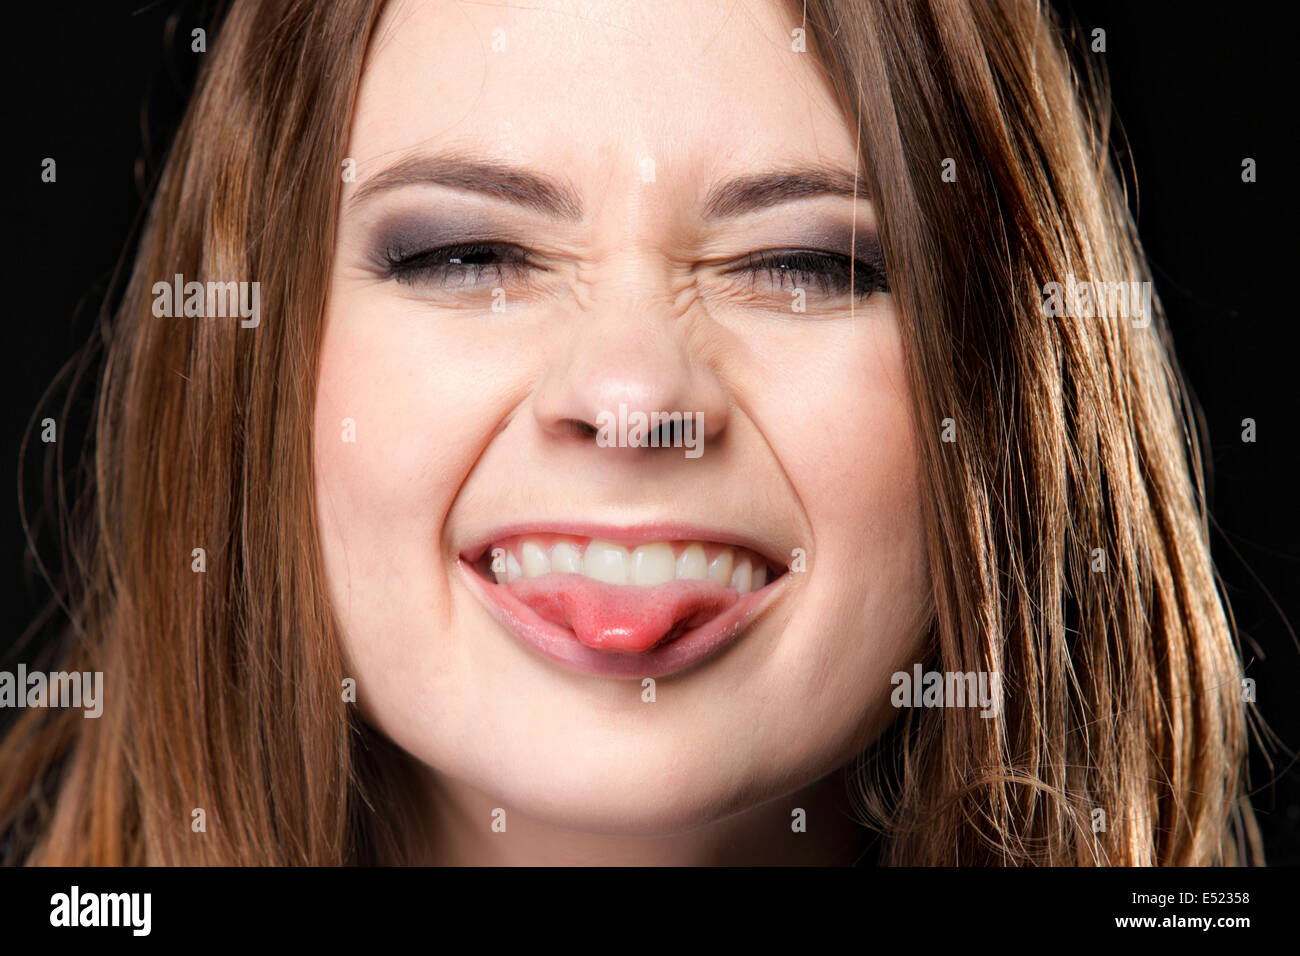 Grimacing. Young Woman Making Silly Face. - Stock Image